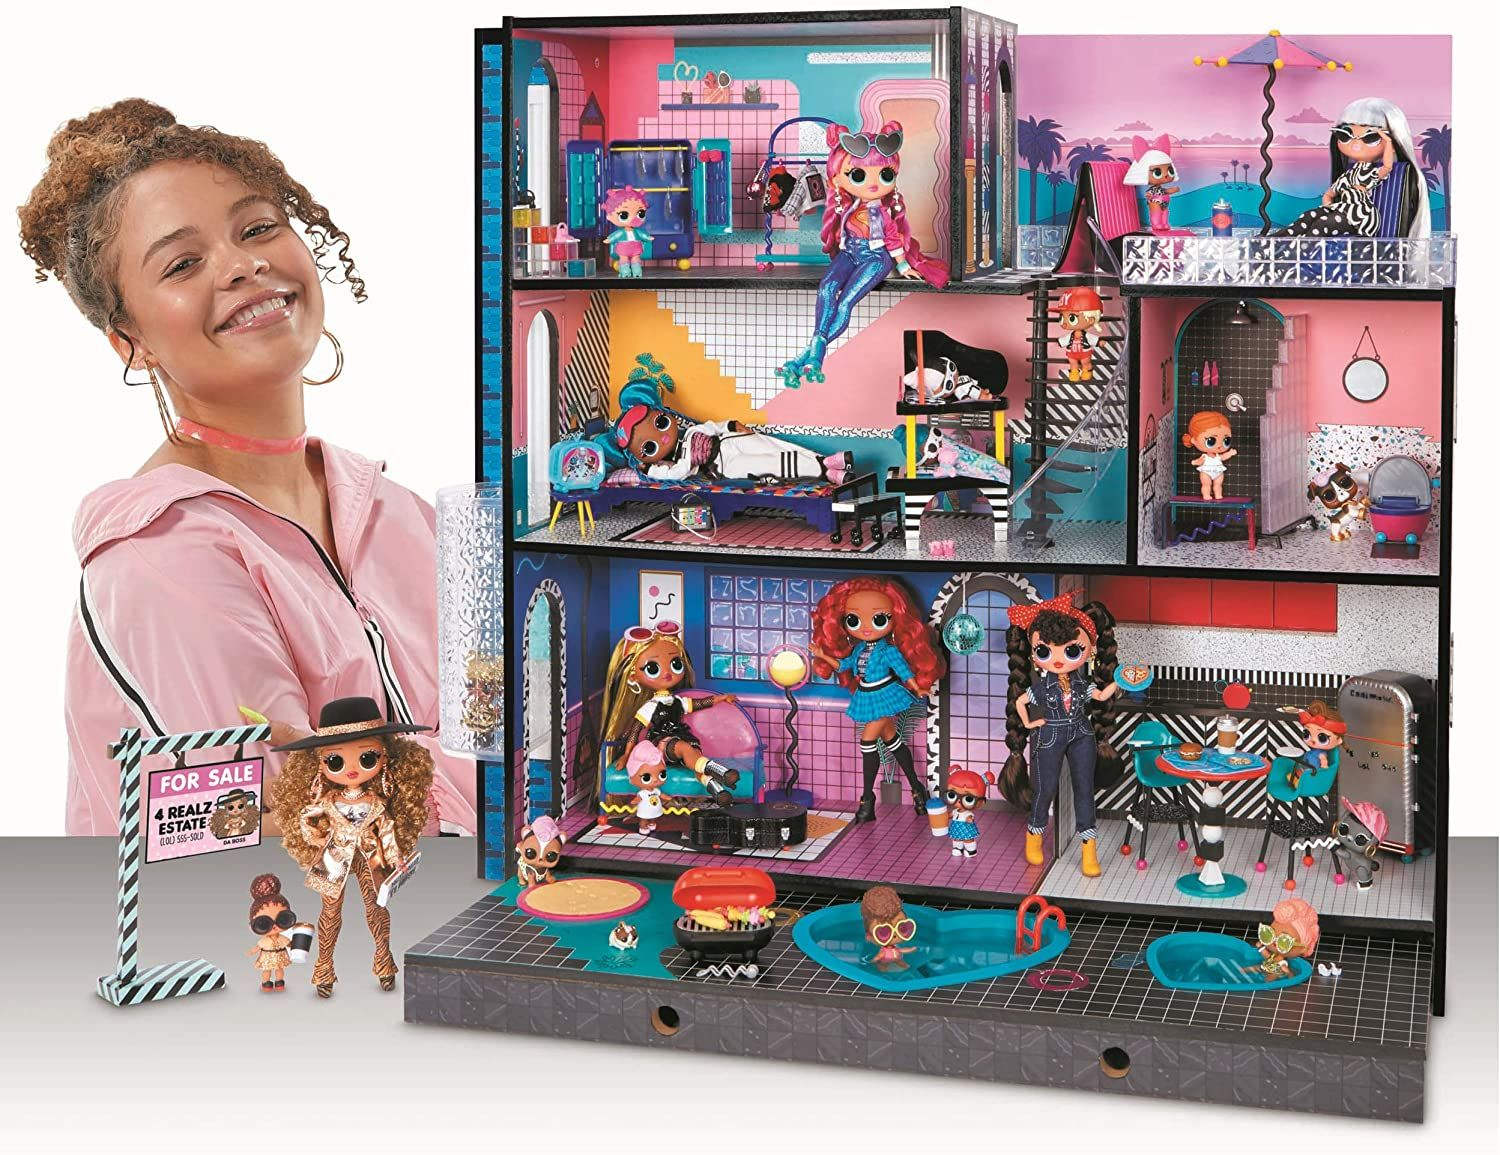 MGA has released new version of LOL Surprise doll house